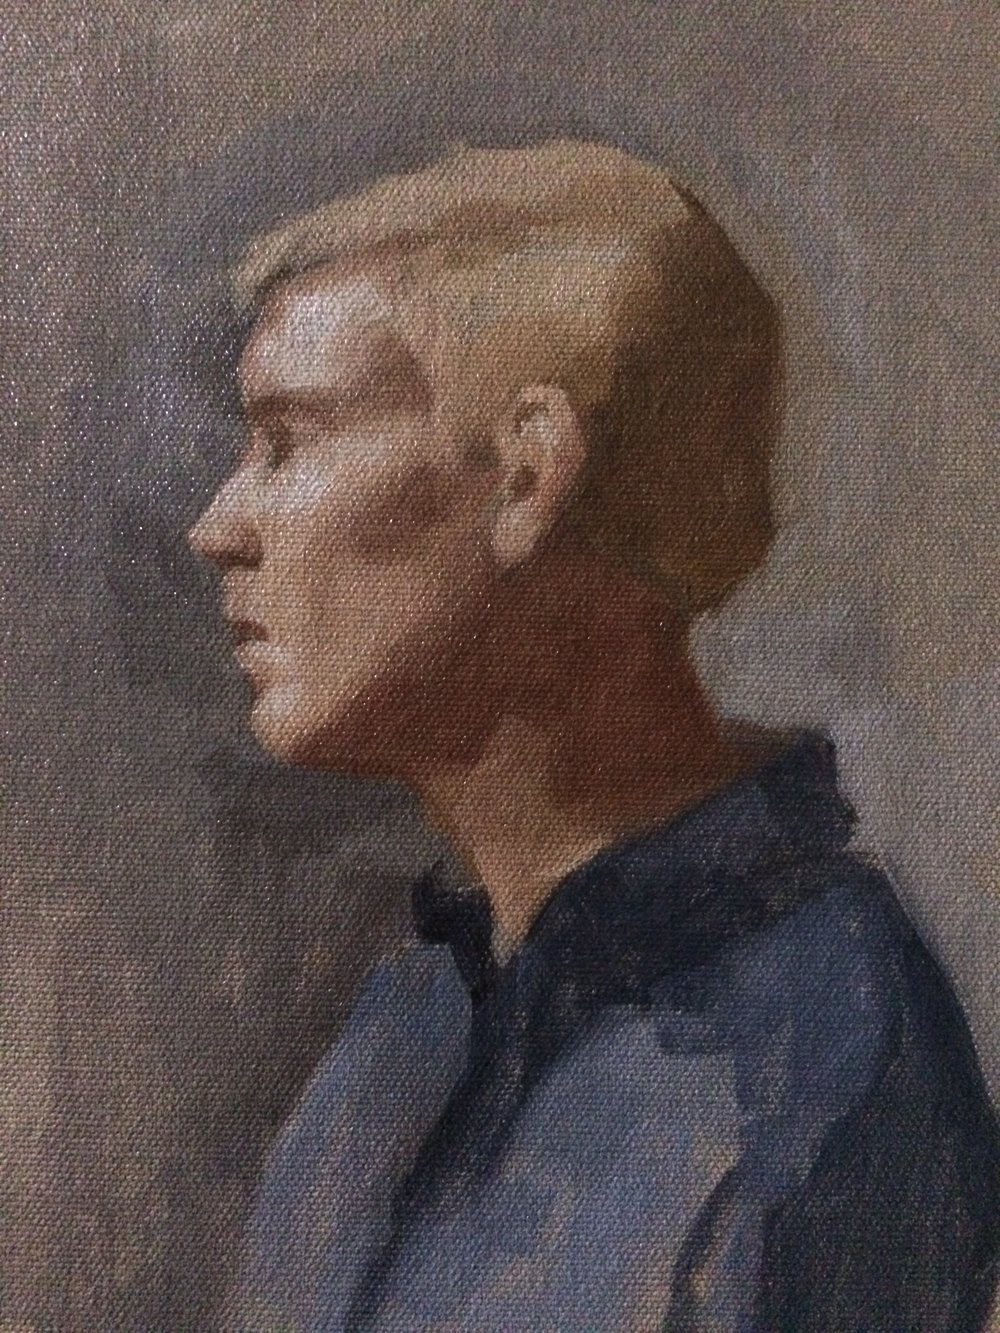 Head study from The Palette and Chisel